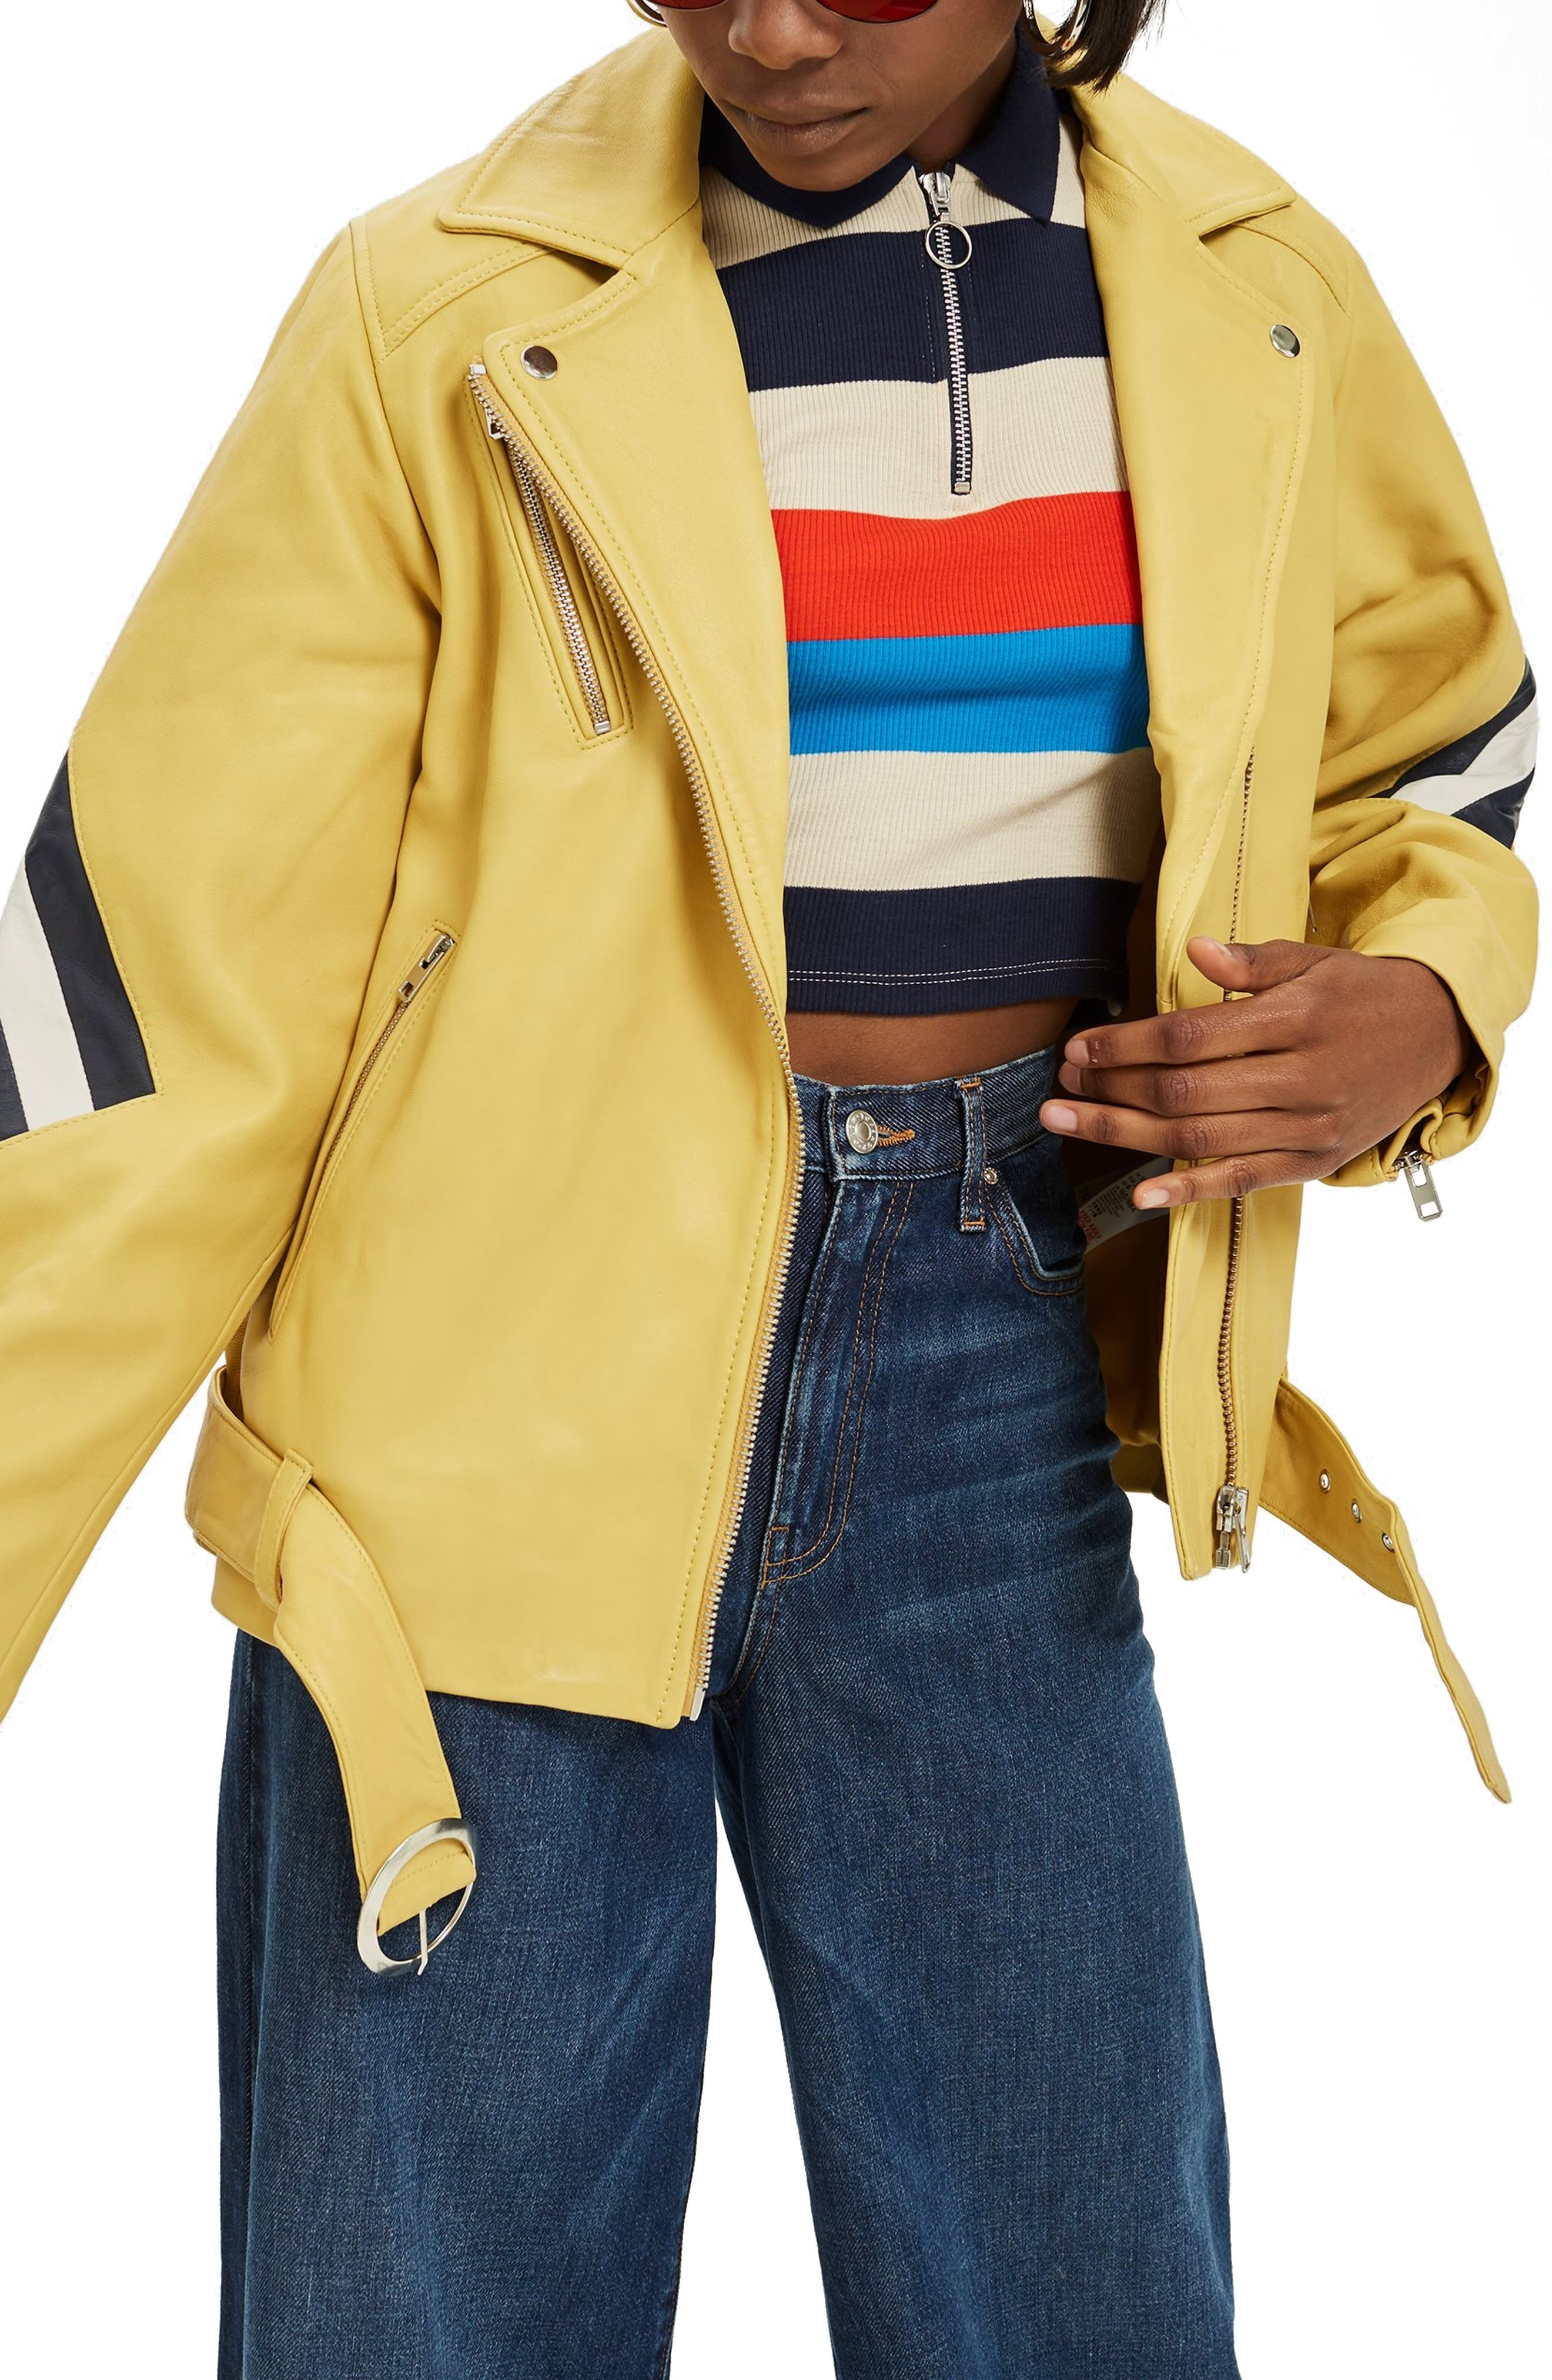 Strobe Leather Jacket,                             Main thumbnail 1, color,                             Yellow Multi